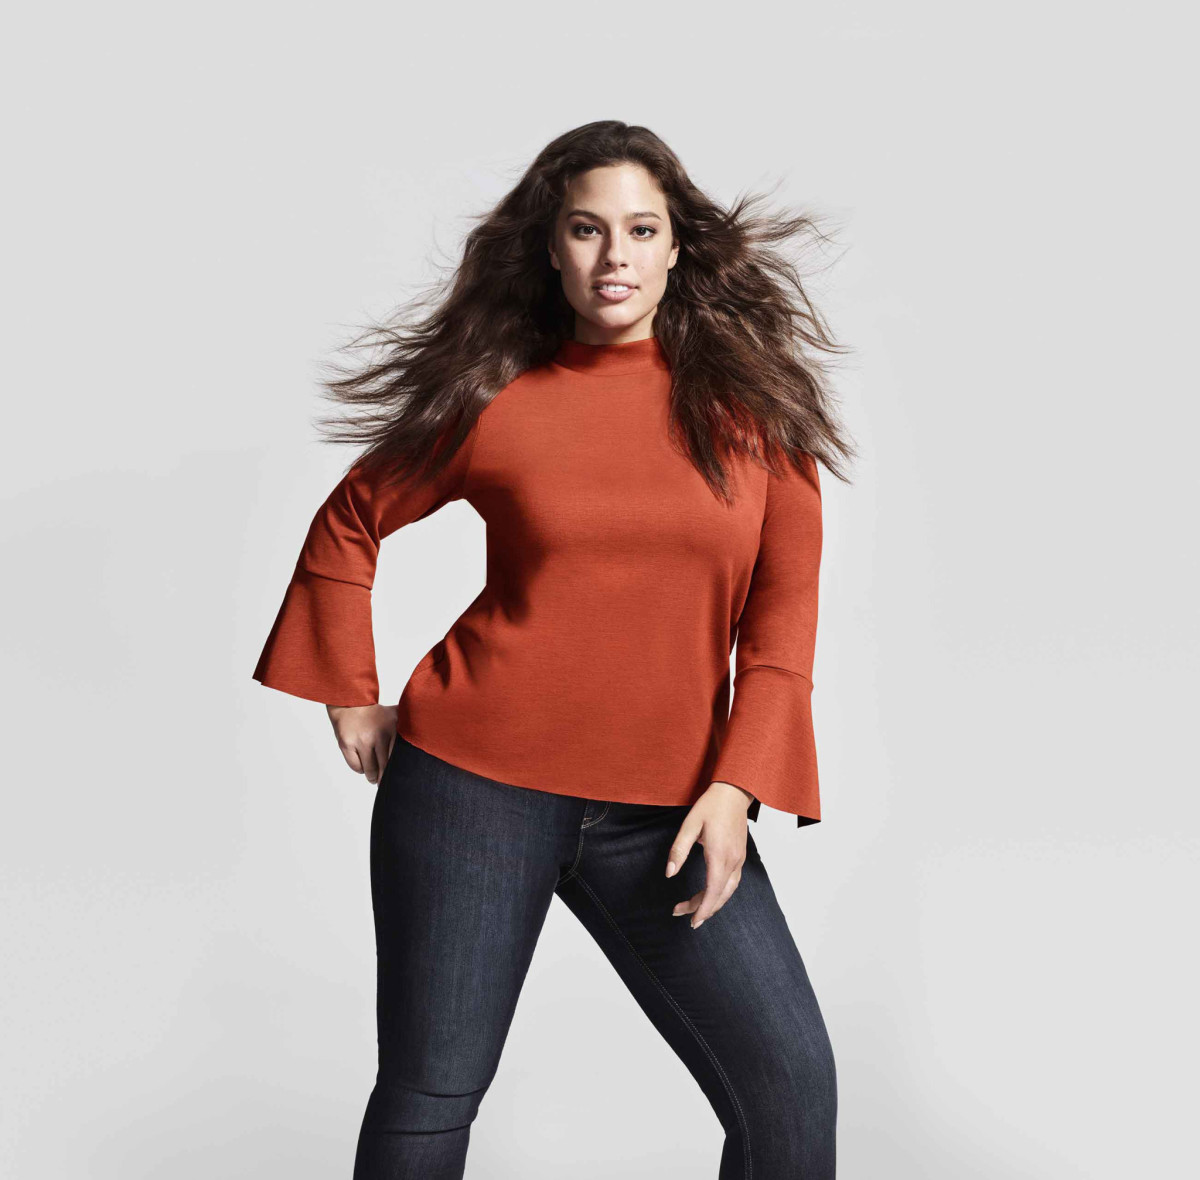 Supermodellen Ashley Graham frontar Lindex kampanj.